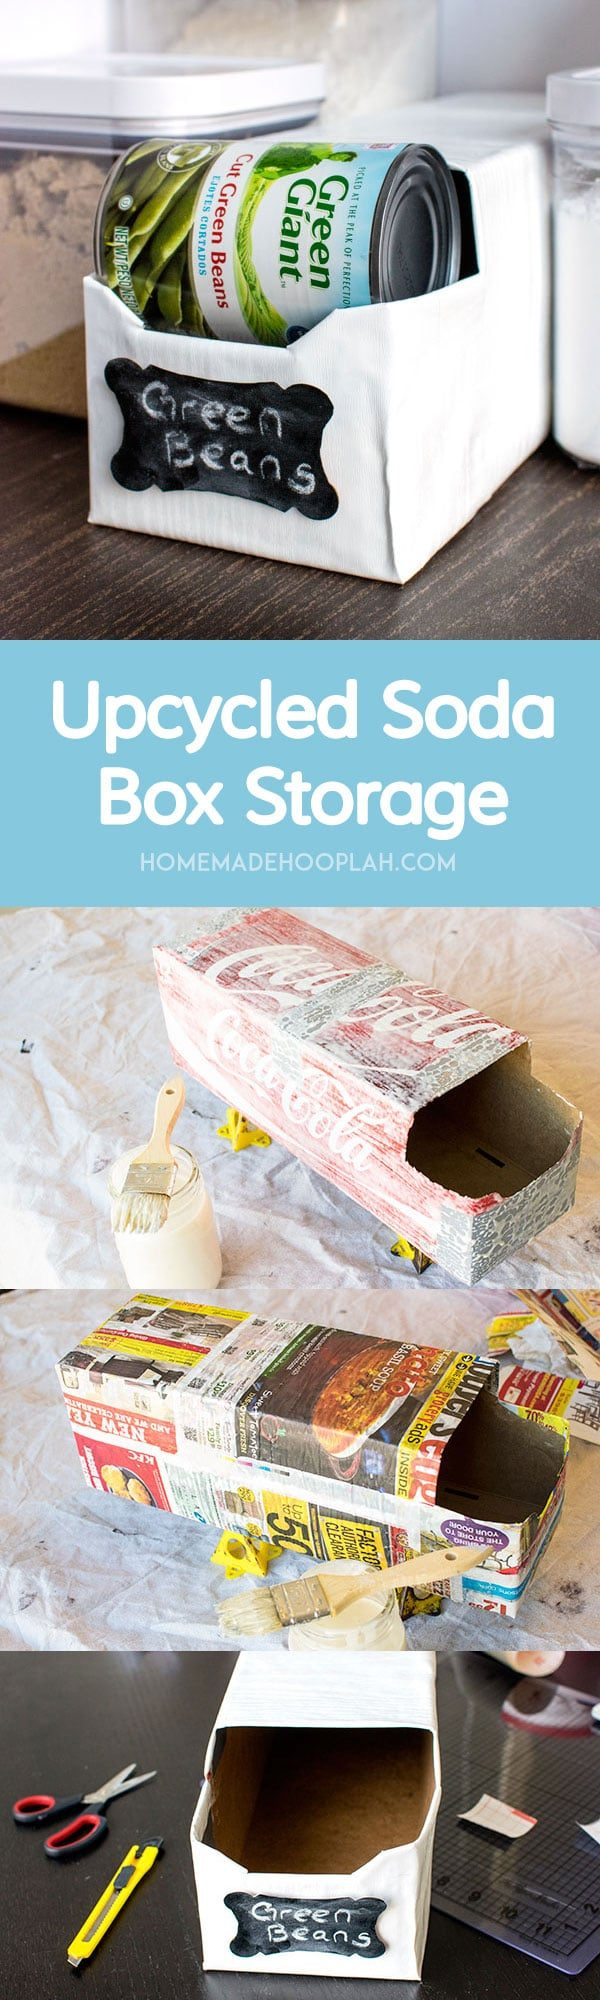 Upcycled Soda Box Storage! Reuse your empty soda boxes to create trendy can storage for your pantry!   HomemadeHooplah.com